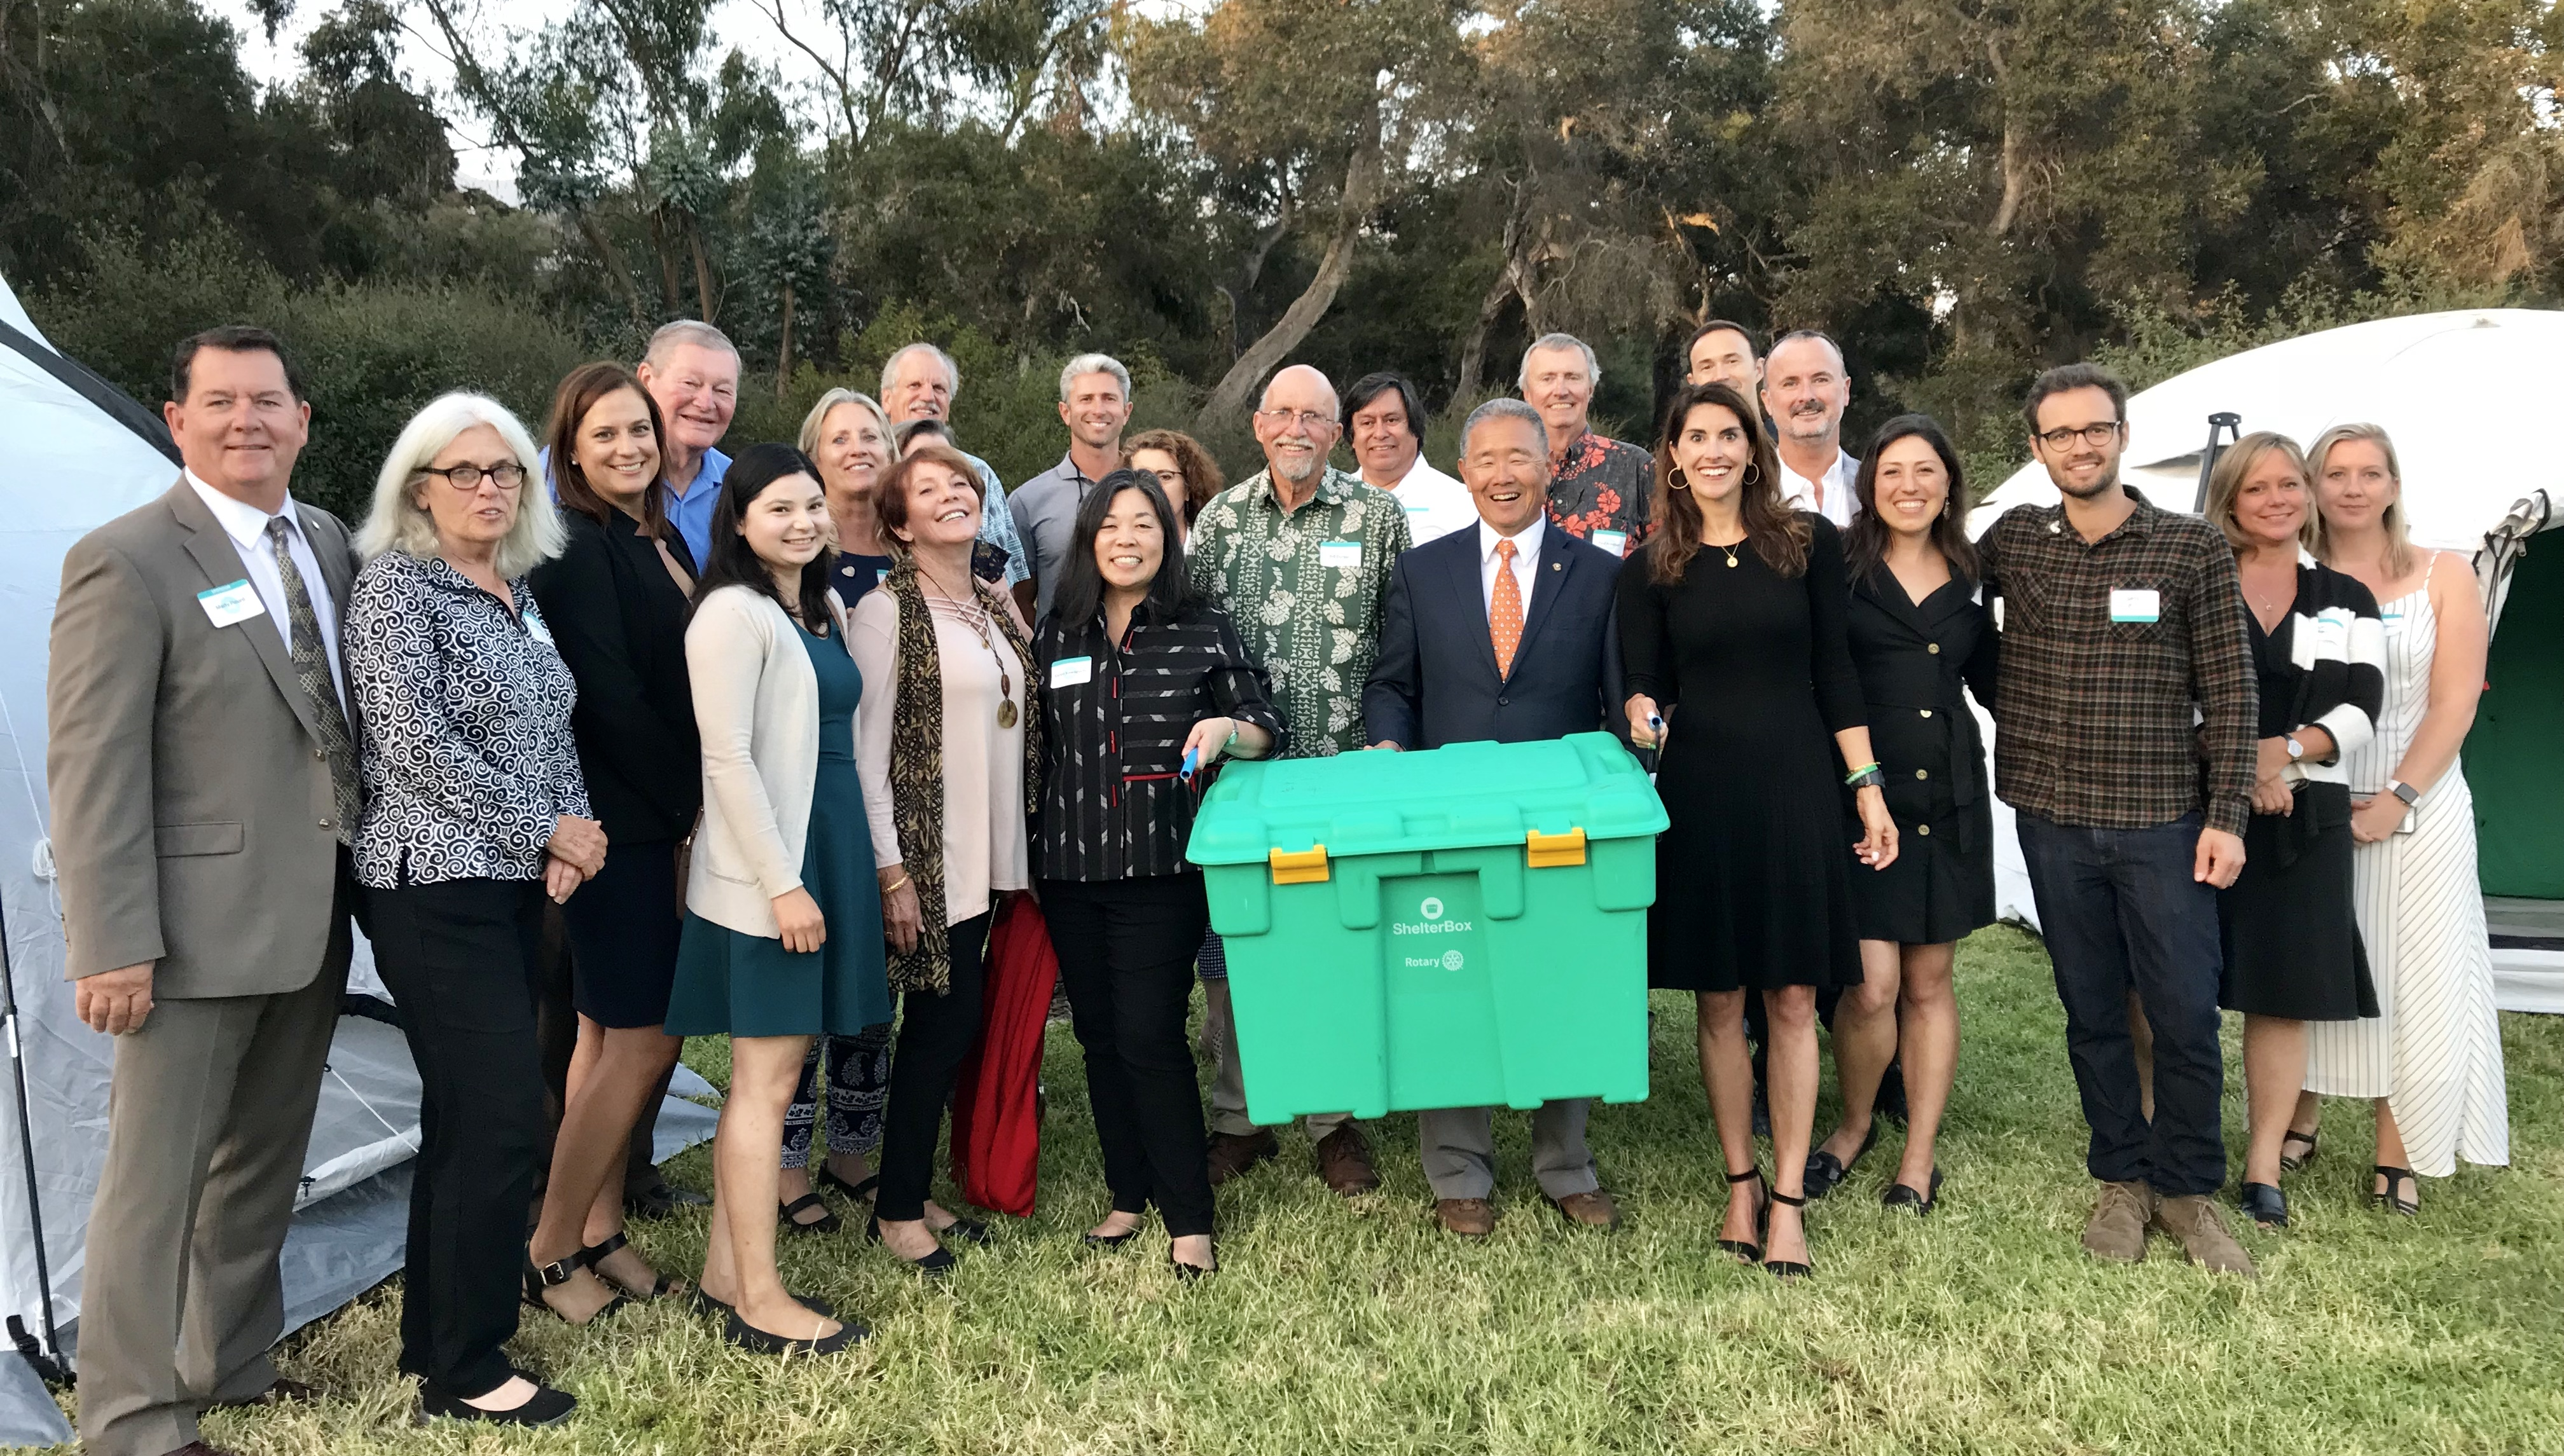 Rotarians and ShelterBox employees celebrate